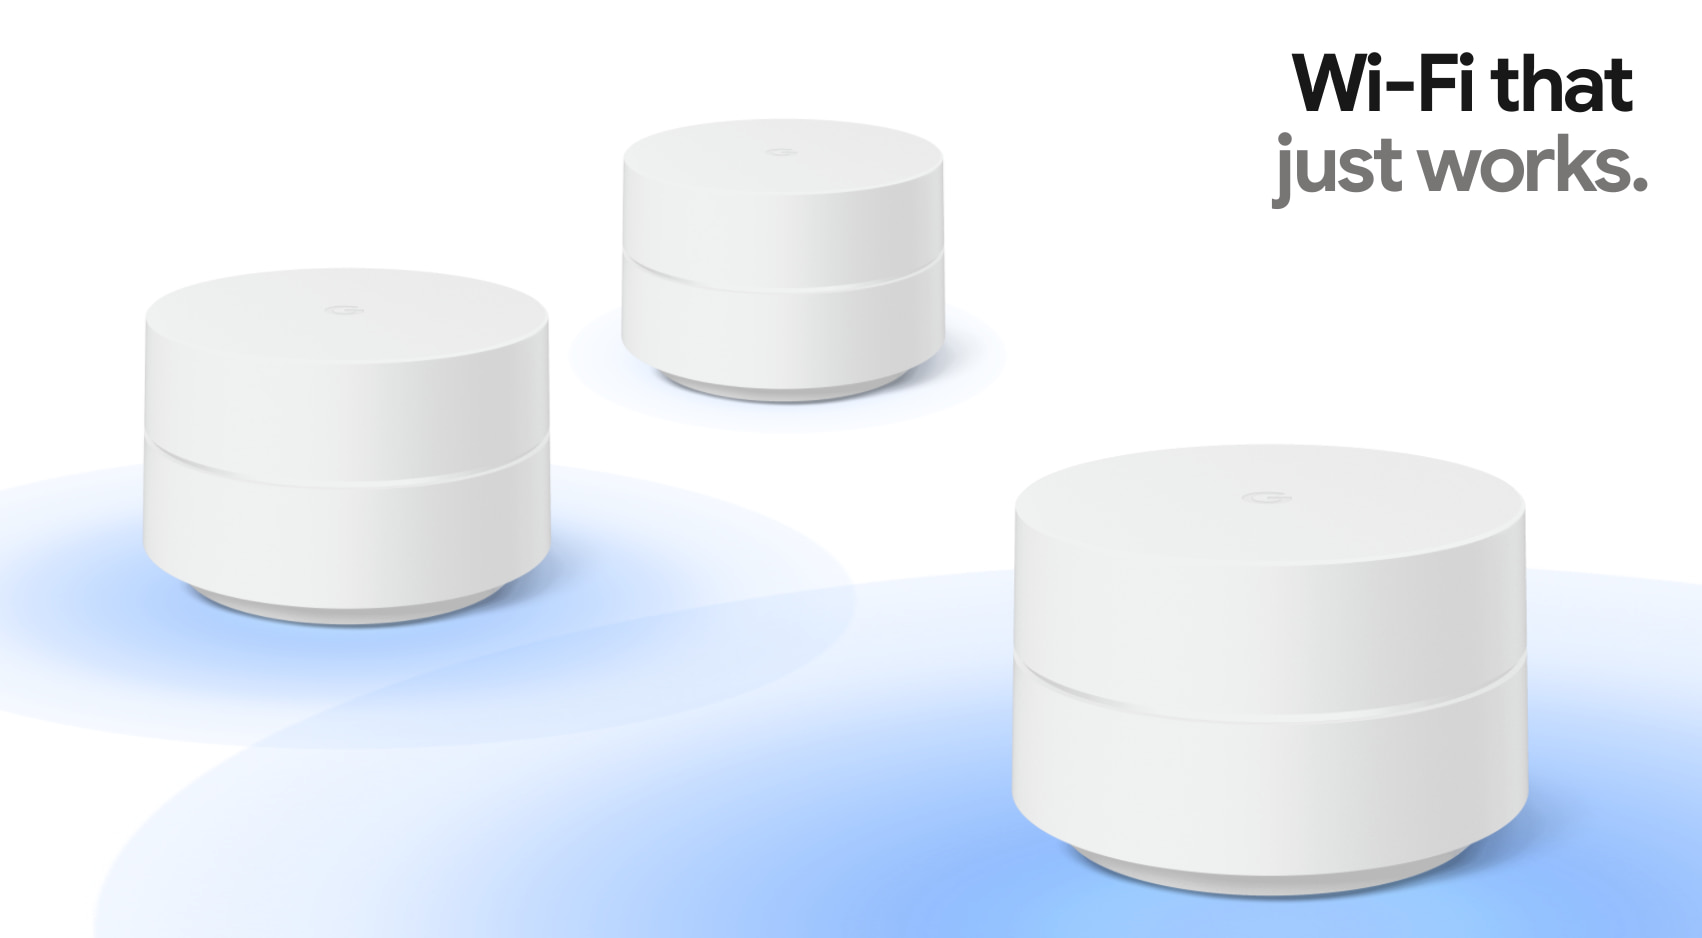 Google's new(old) Wifi router quietly shows up at retailers